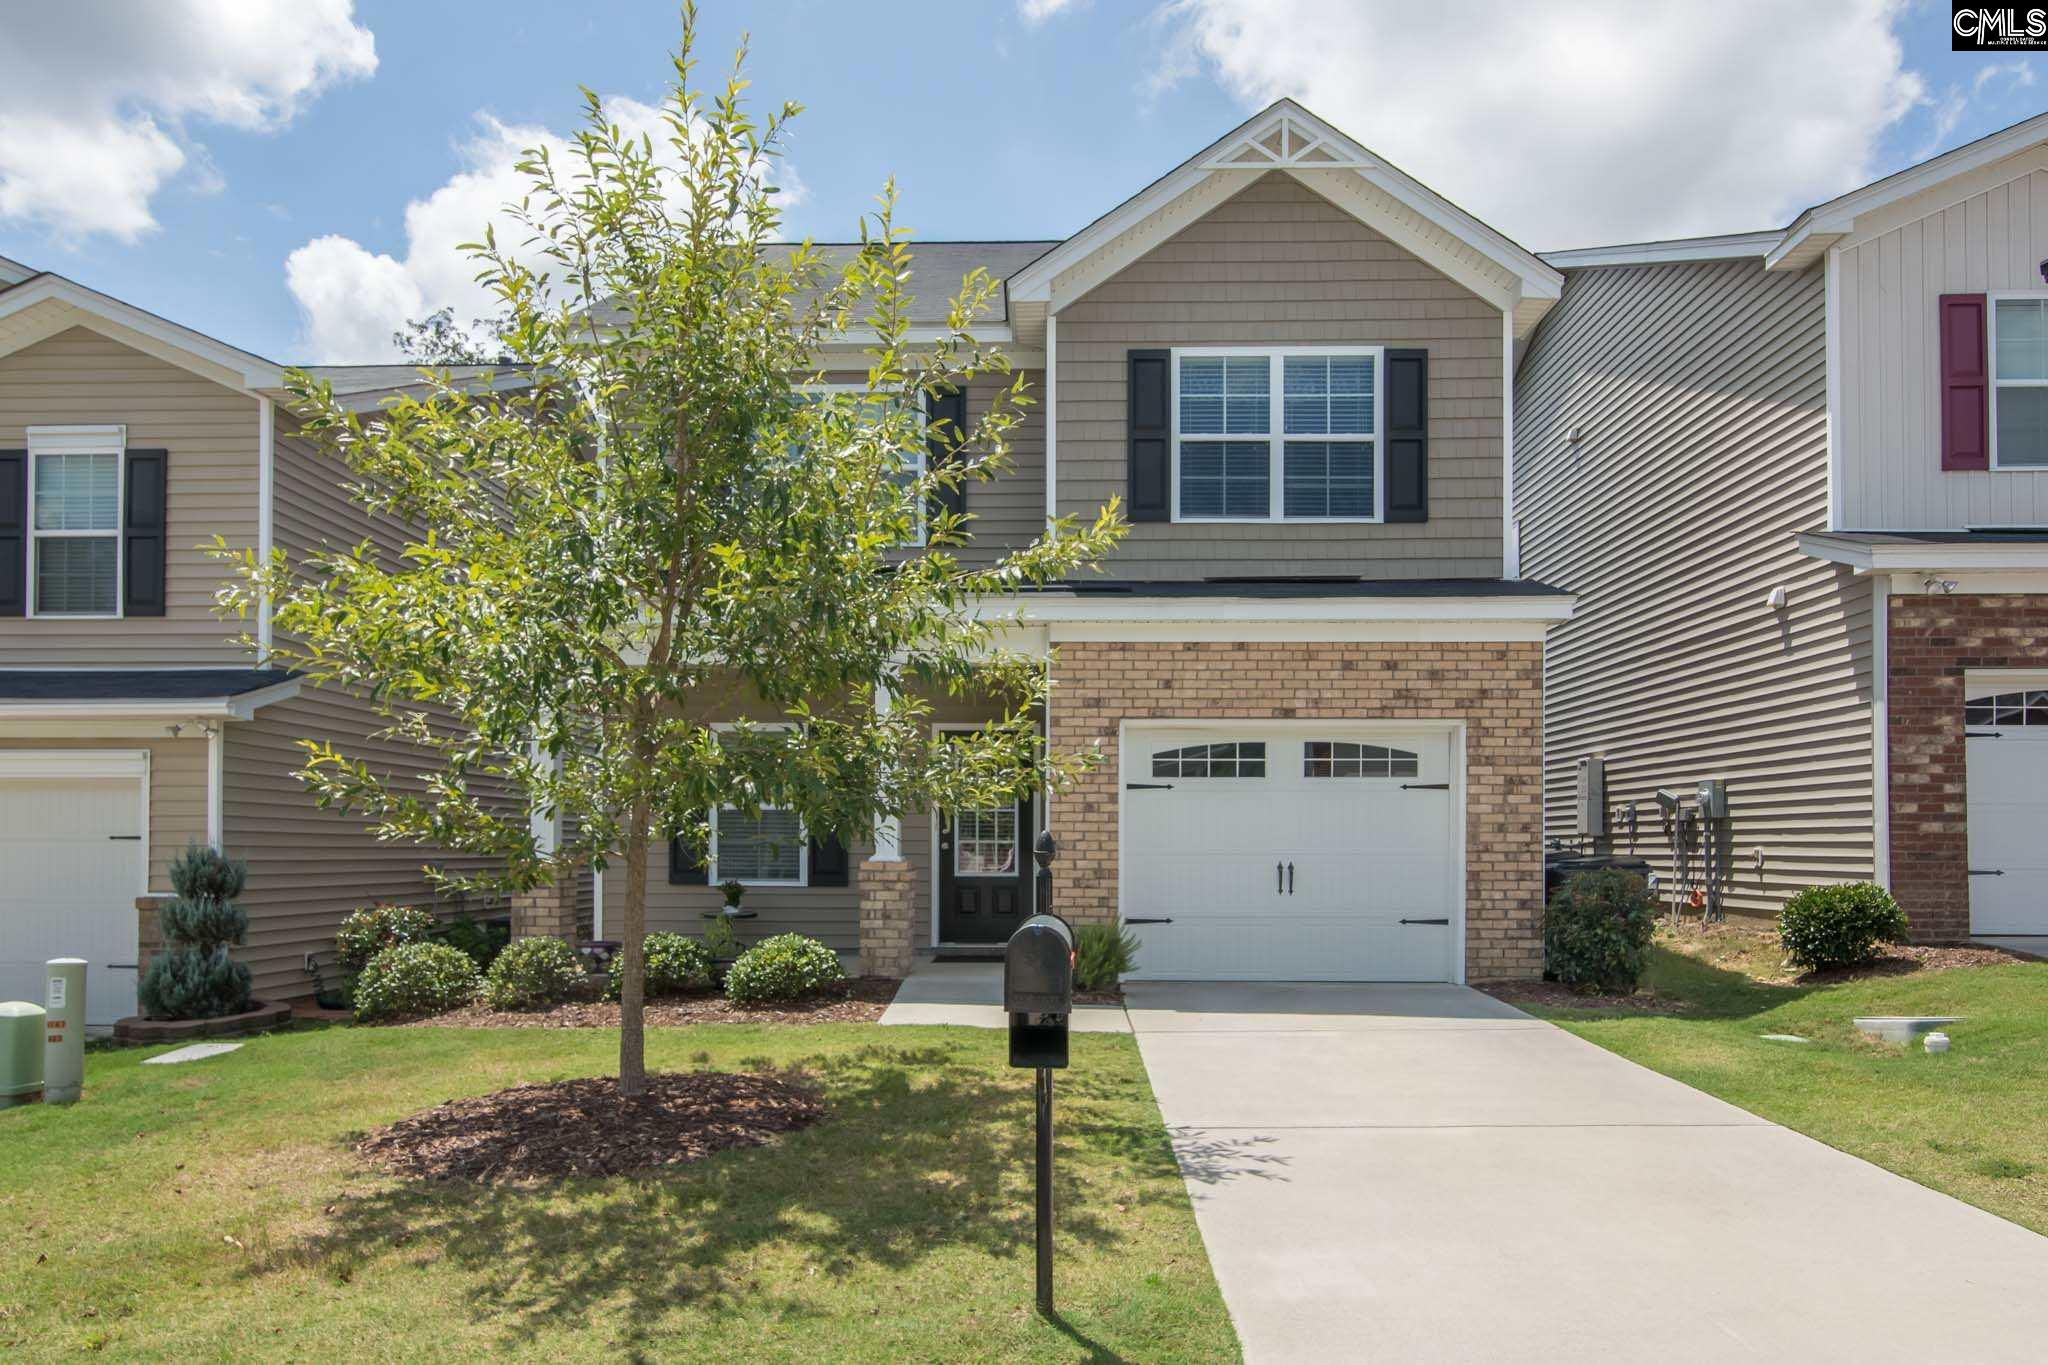 125  Chesterton Lexington, SC 29072-7147